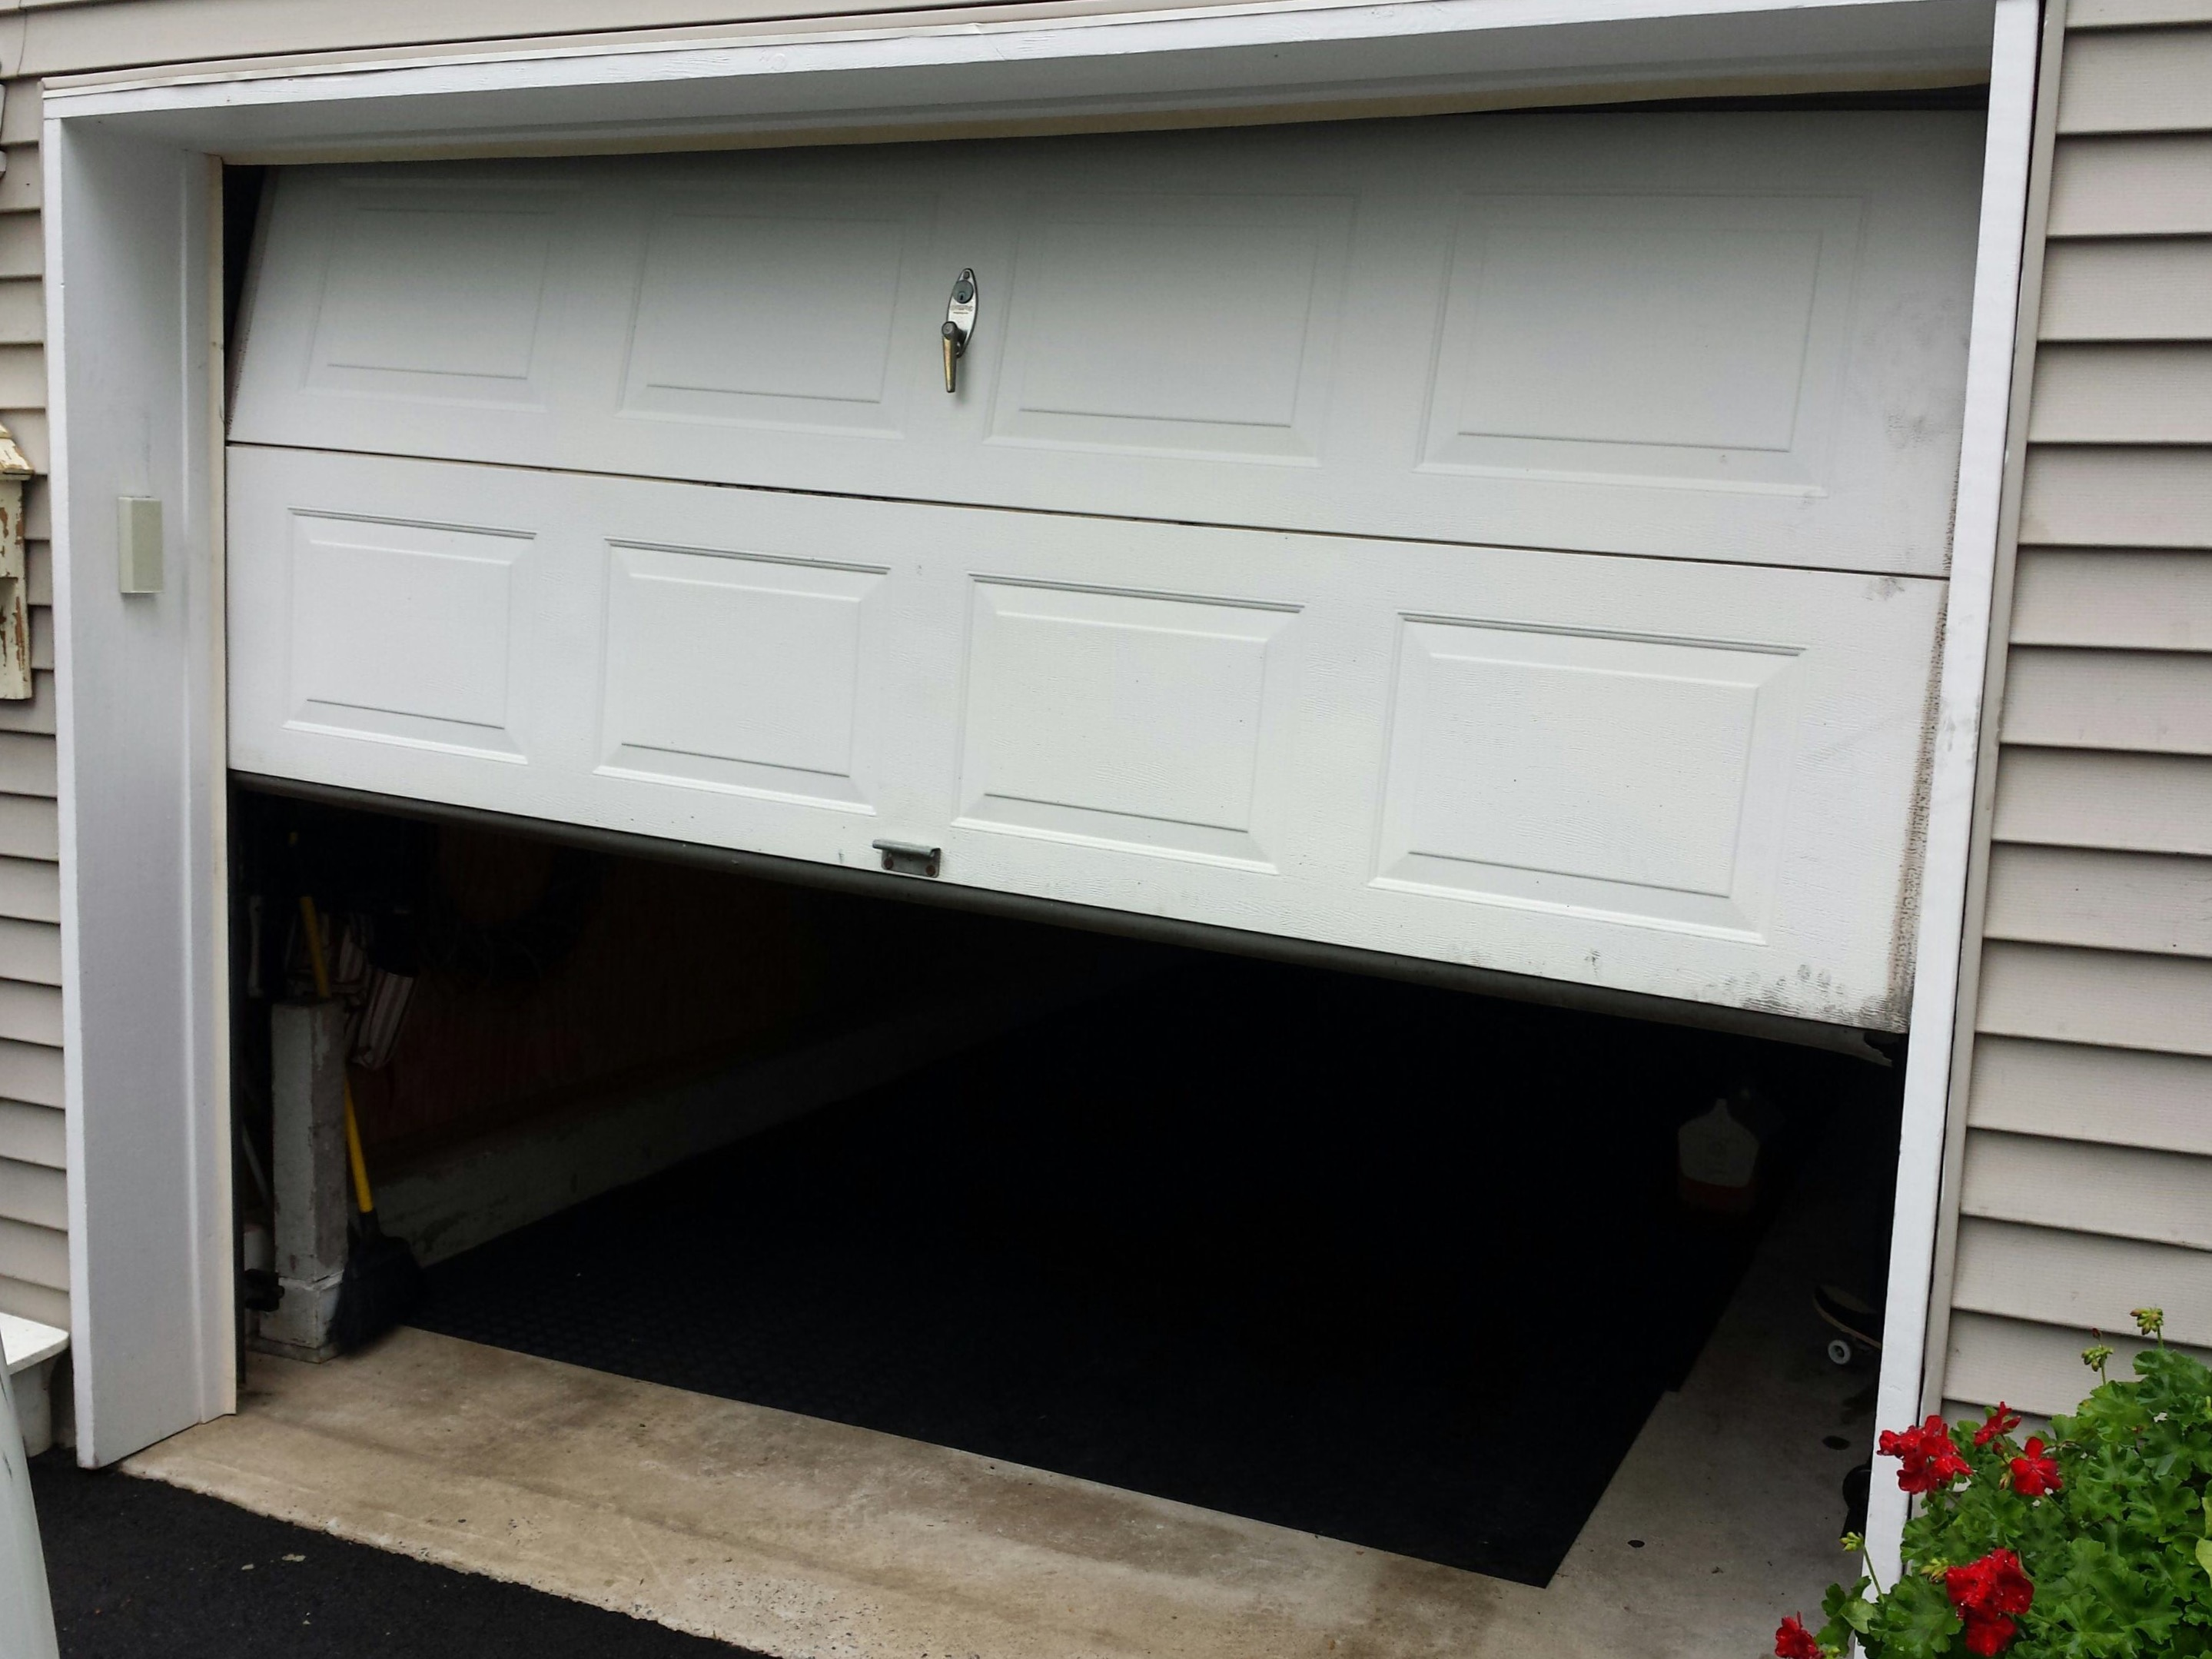 Le Meilleur 4 Reasons Why Your Garage Door Is Squeaking Ce Mois Ci